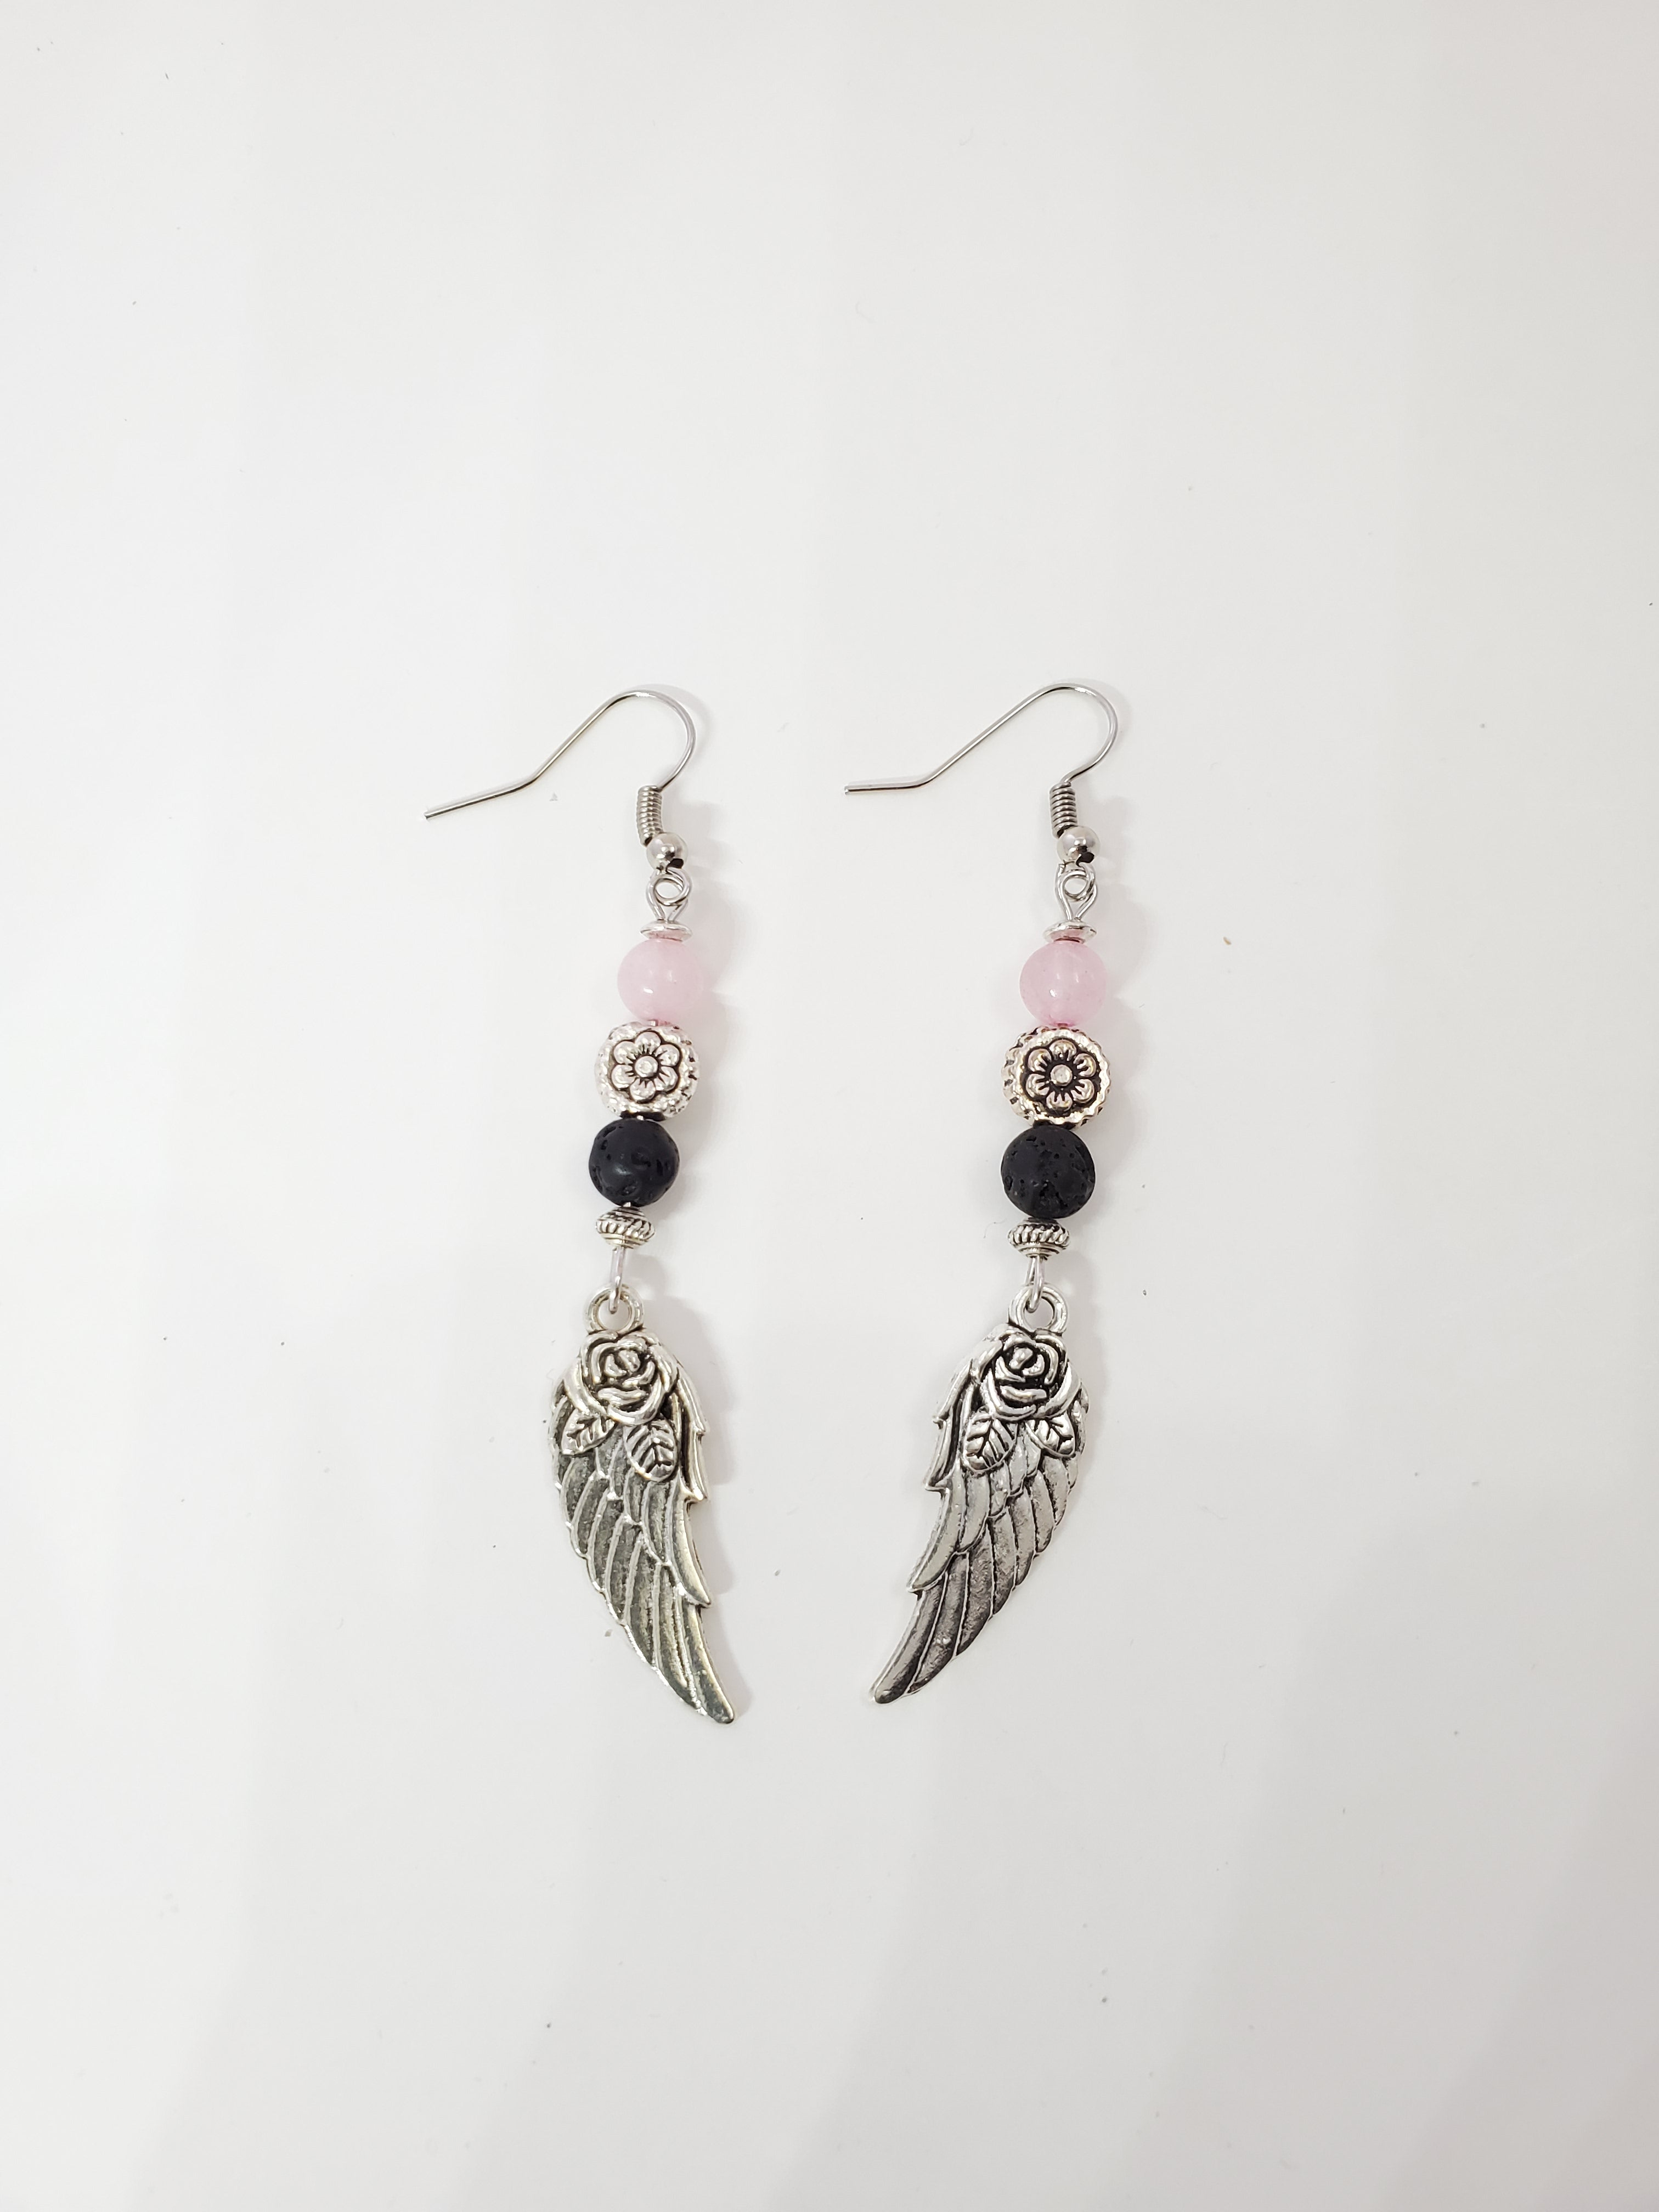 Angel Wing with Rose Quartz Lava Bead Diffuser Earrings